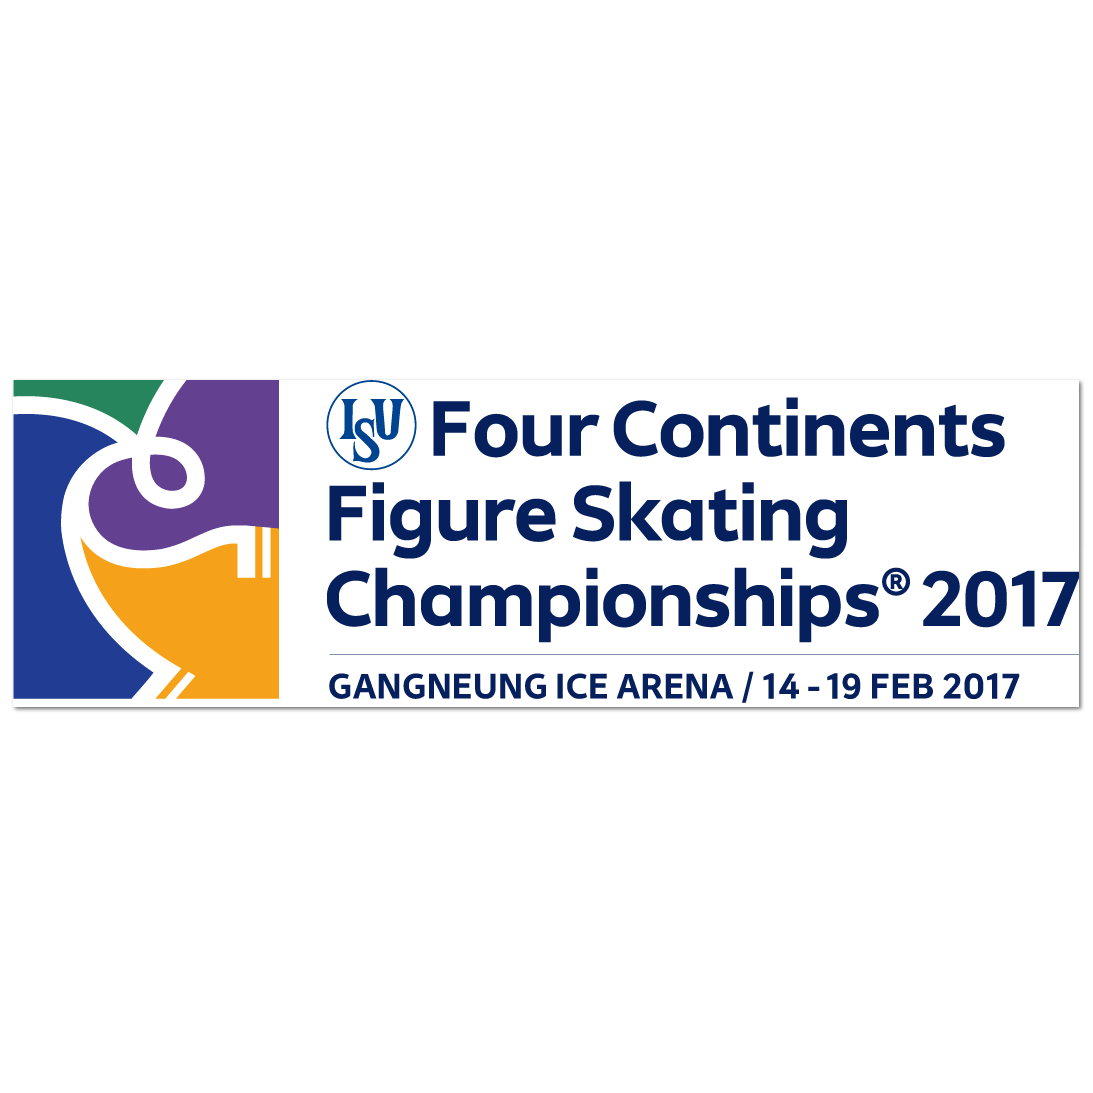 2017 Four Continents Figure Skating Championships